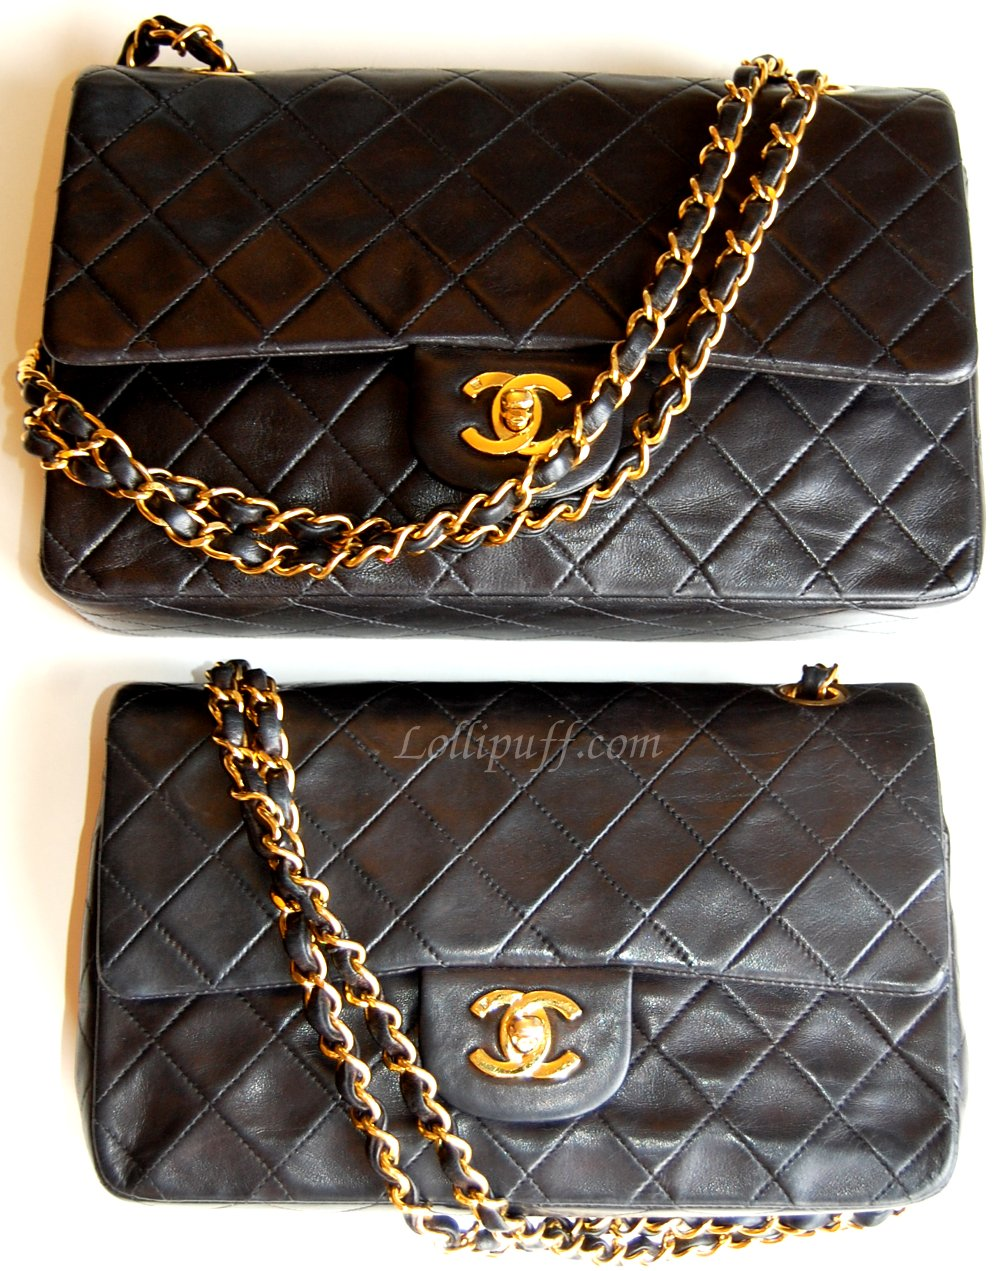 Chanel bag size comparison